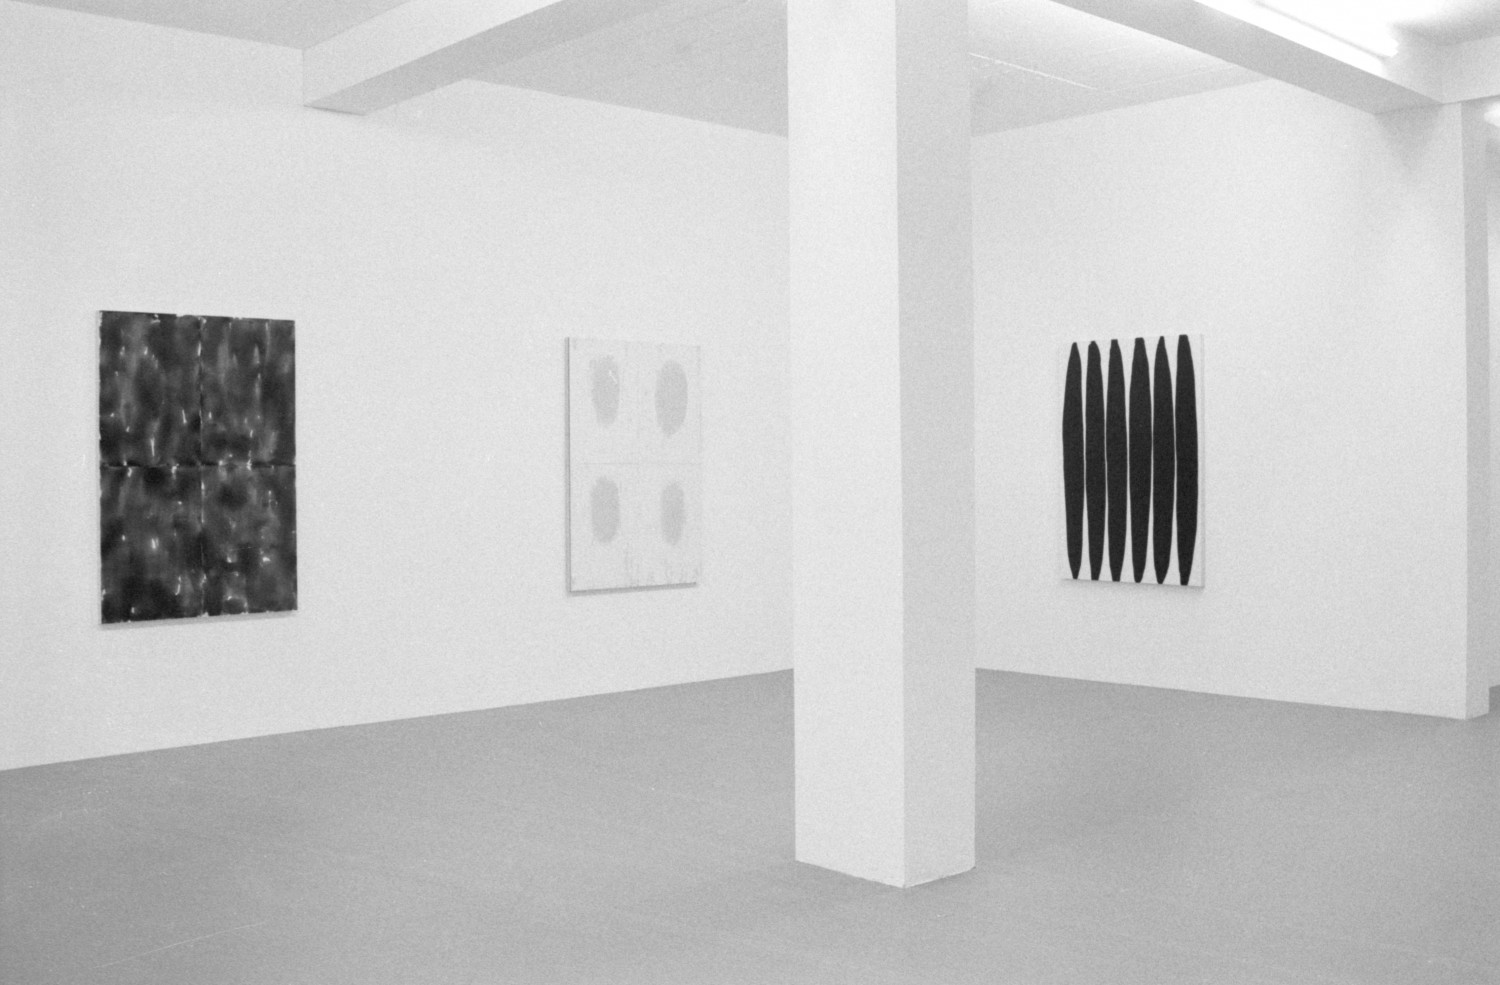 'David Ortins', Installation view, 1995